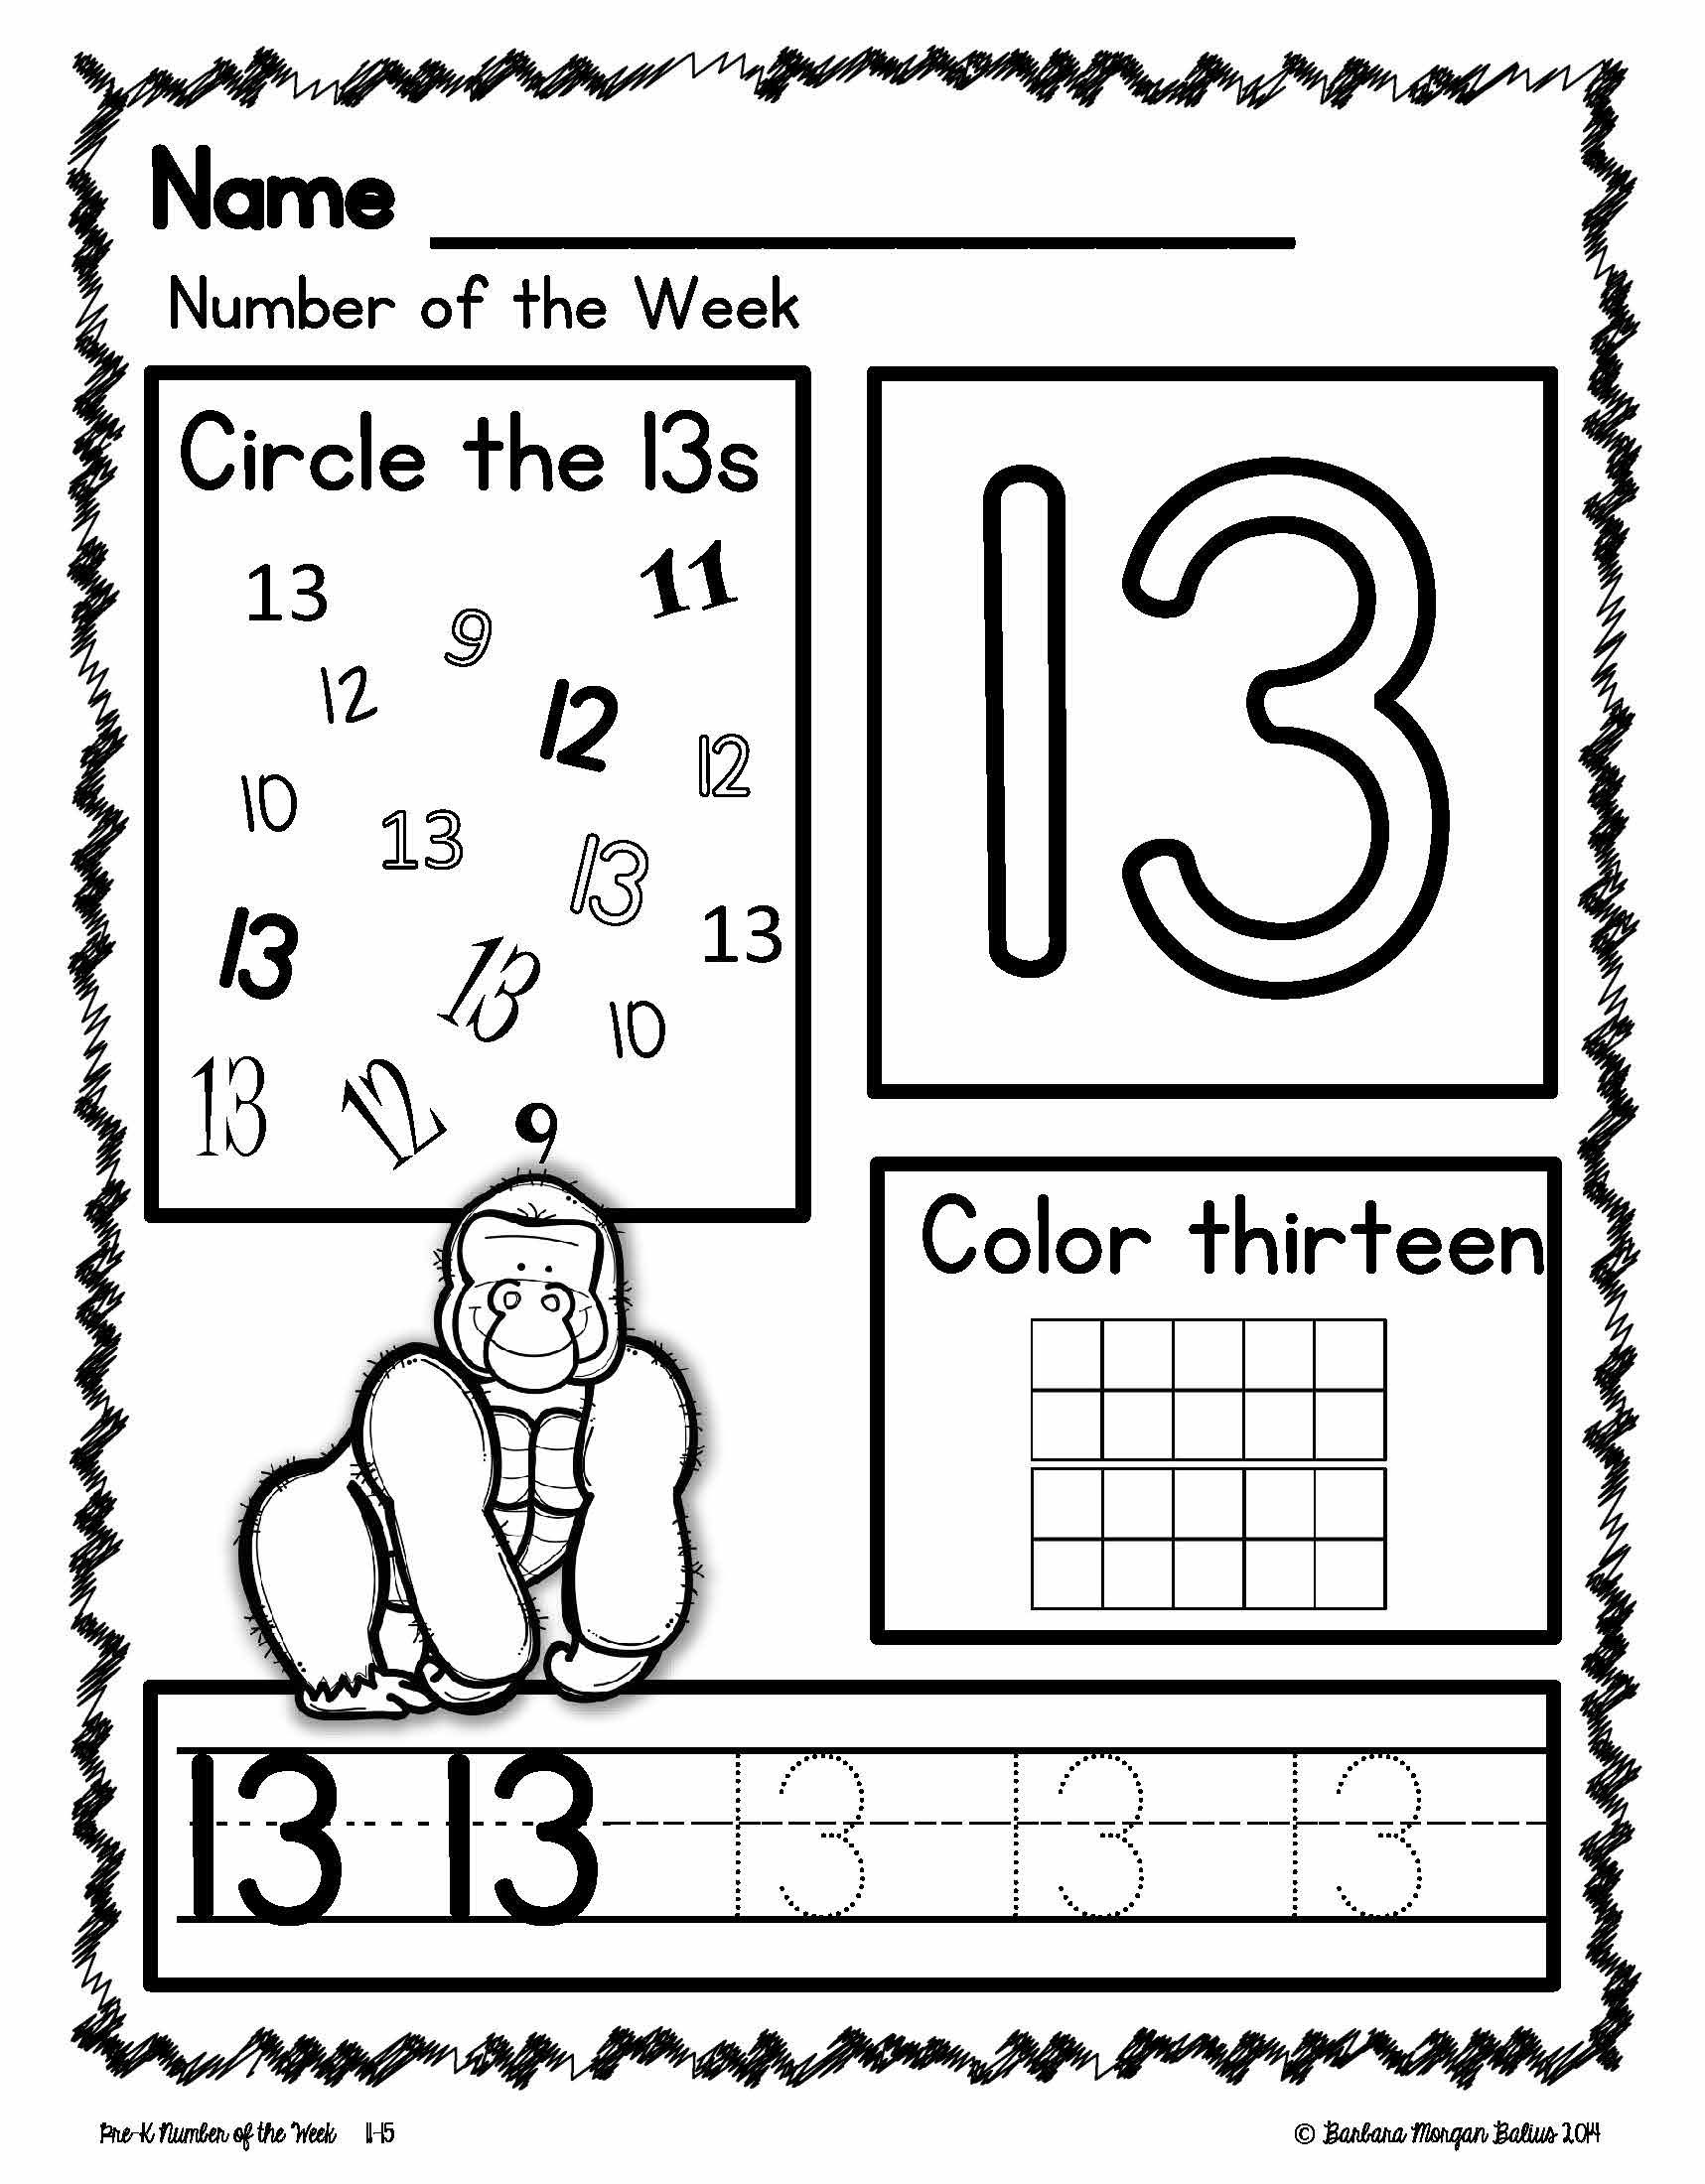 10 Zoo Animals Number Sequence 15 Preschool Math Bw Picture